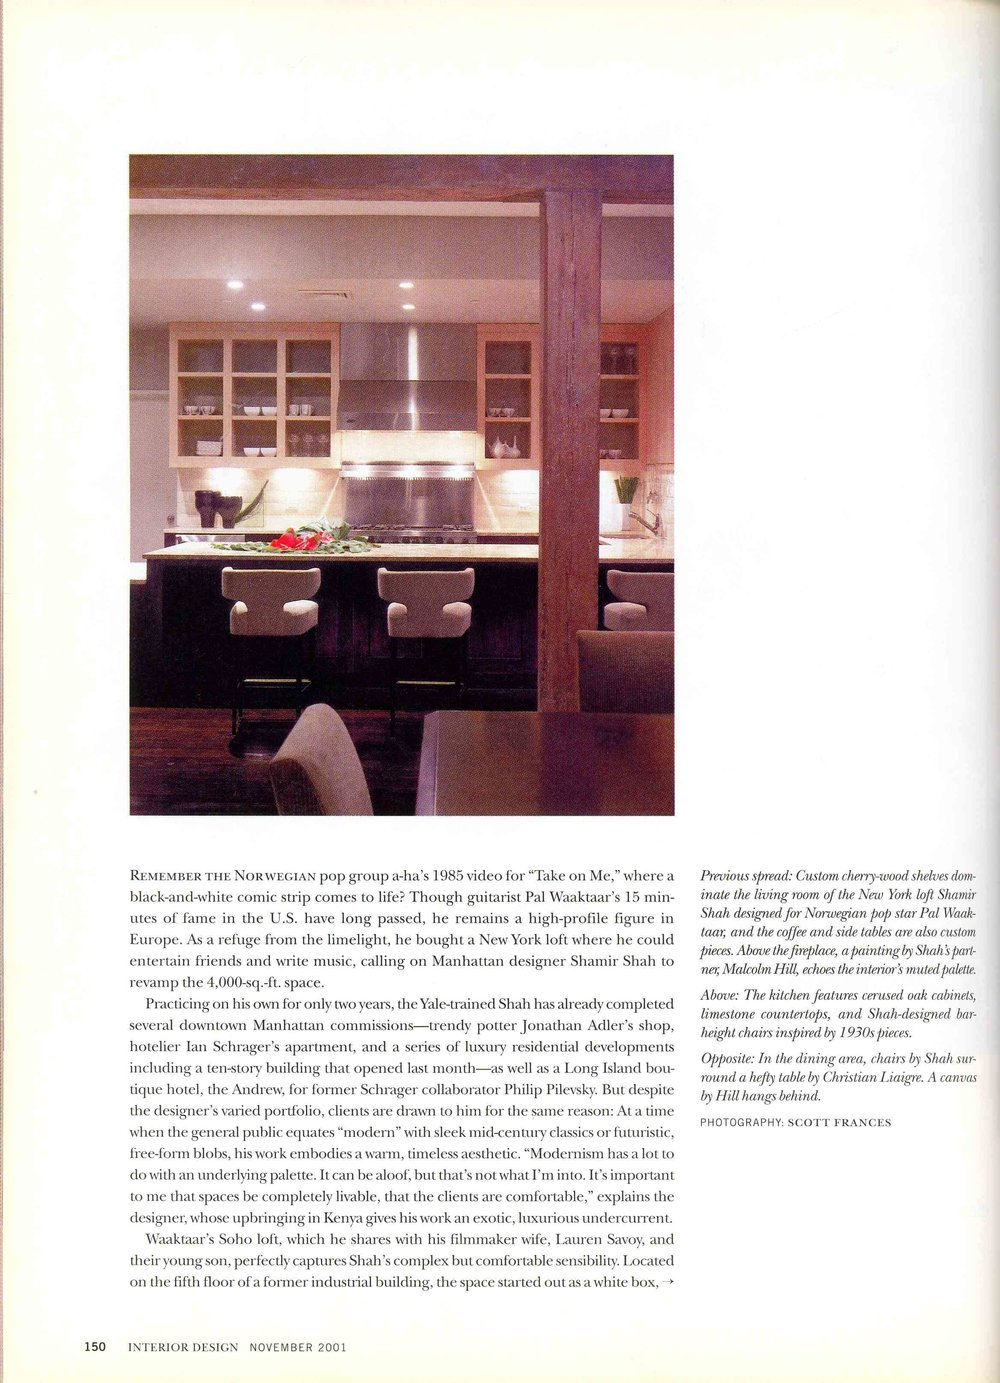 Interior Design_Nov 01_Savoy_Full Article_Page_4.jpg